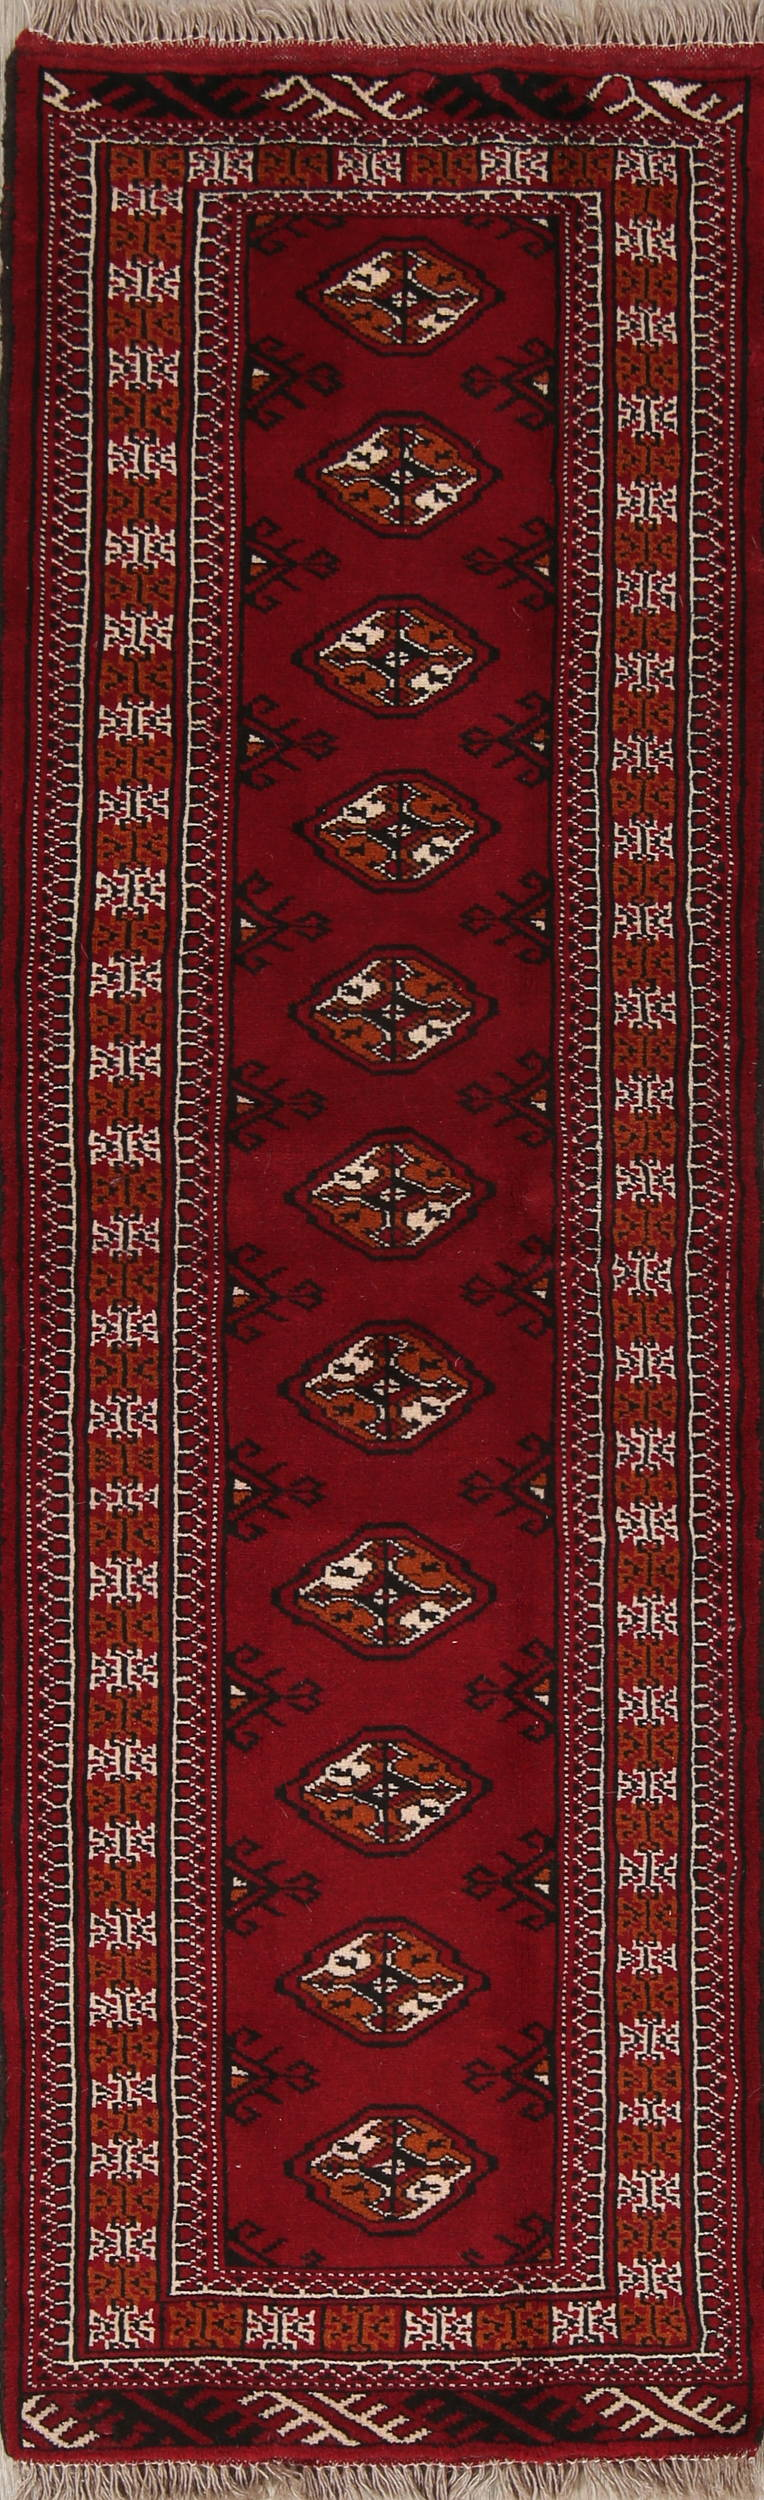 Red Geometric Balouch Persian Hand-Knotted 2x7 Wool Runner Rug